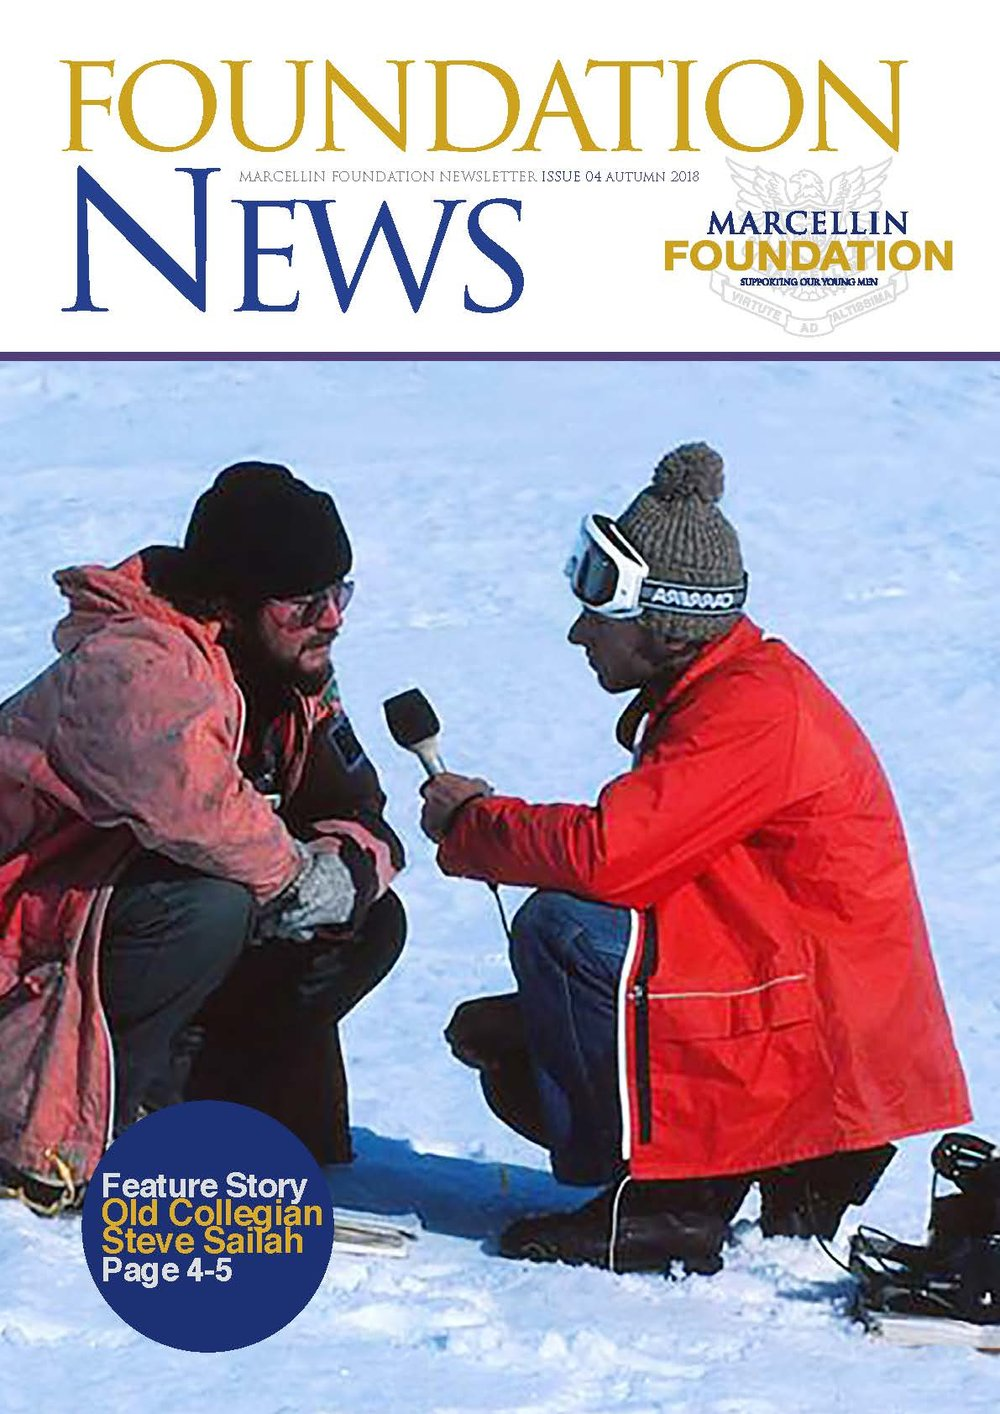 Please provide your mailing address if you would like to receive the printed copy of the Foundation News